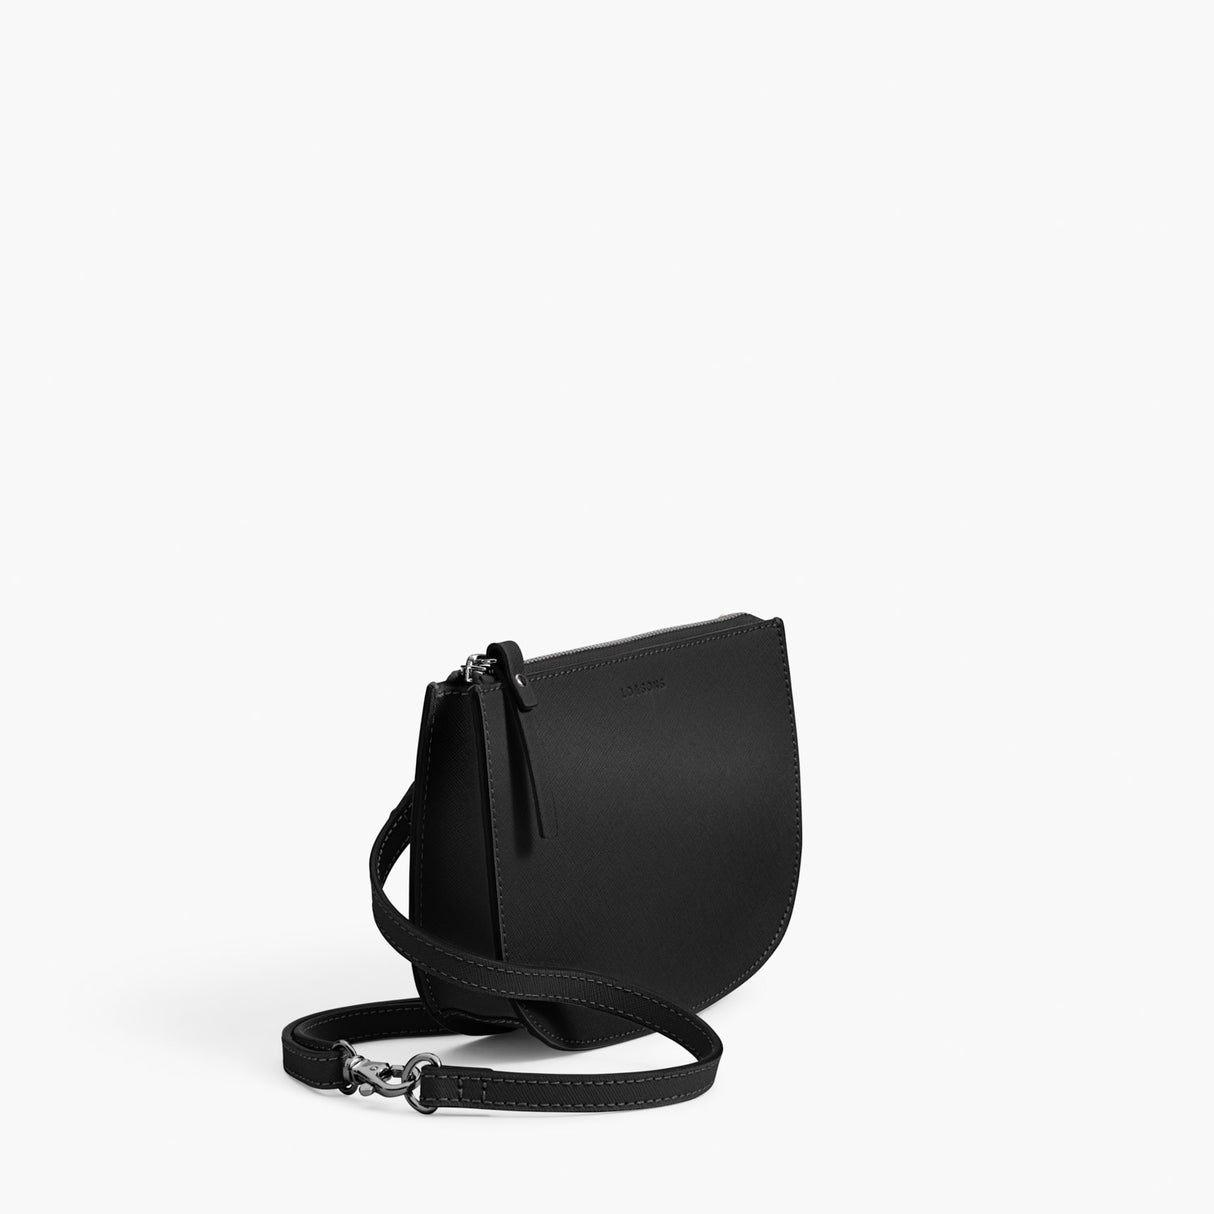 Side - Waverley 2 - Saffiano Leather - Black / Gunmetal / Grey - Crossbody Bag - Lo & Sons